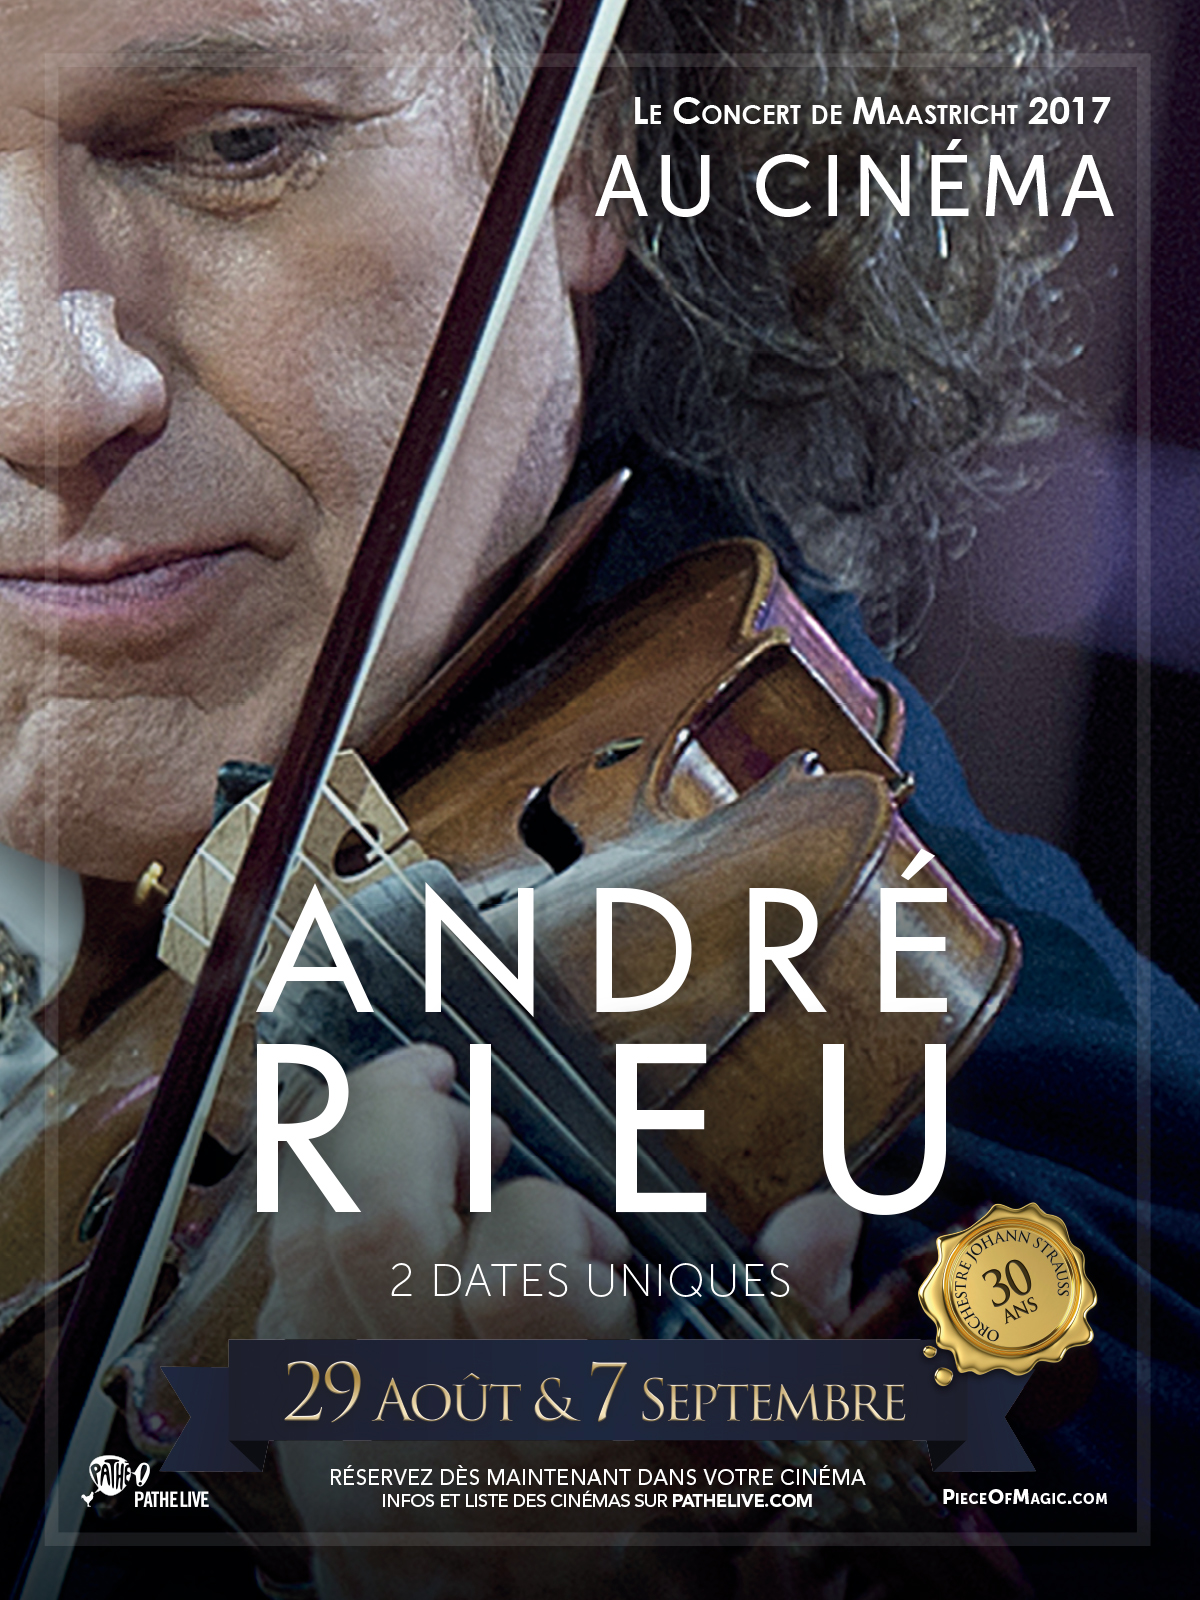 Télécharger ANDRE RIEU – LE CONCERT DE MAASTRICHT AU CINEMA (Pathé Live) HD VF Uploaded